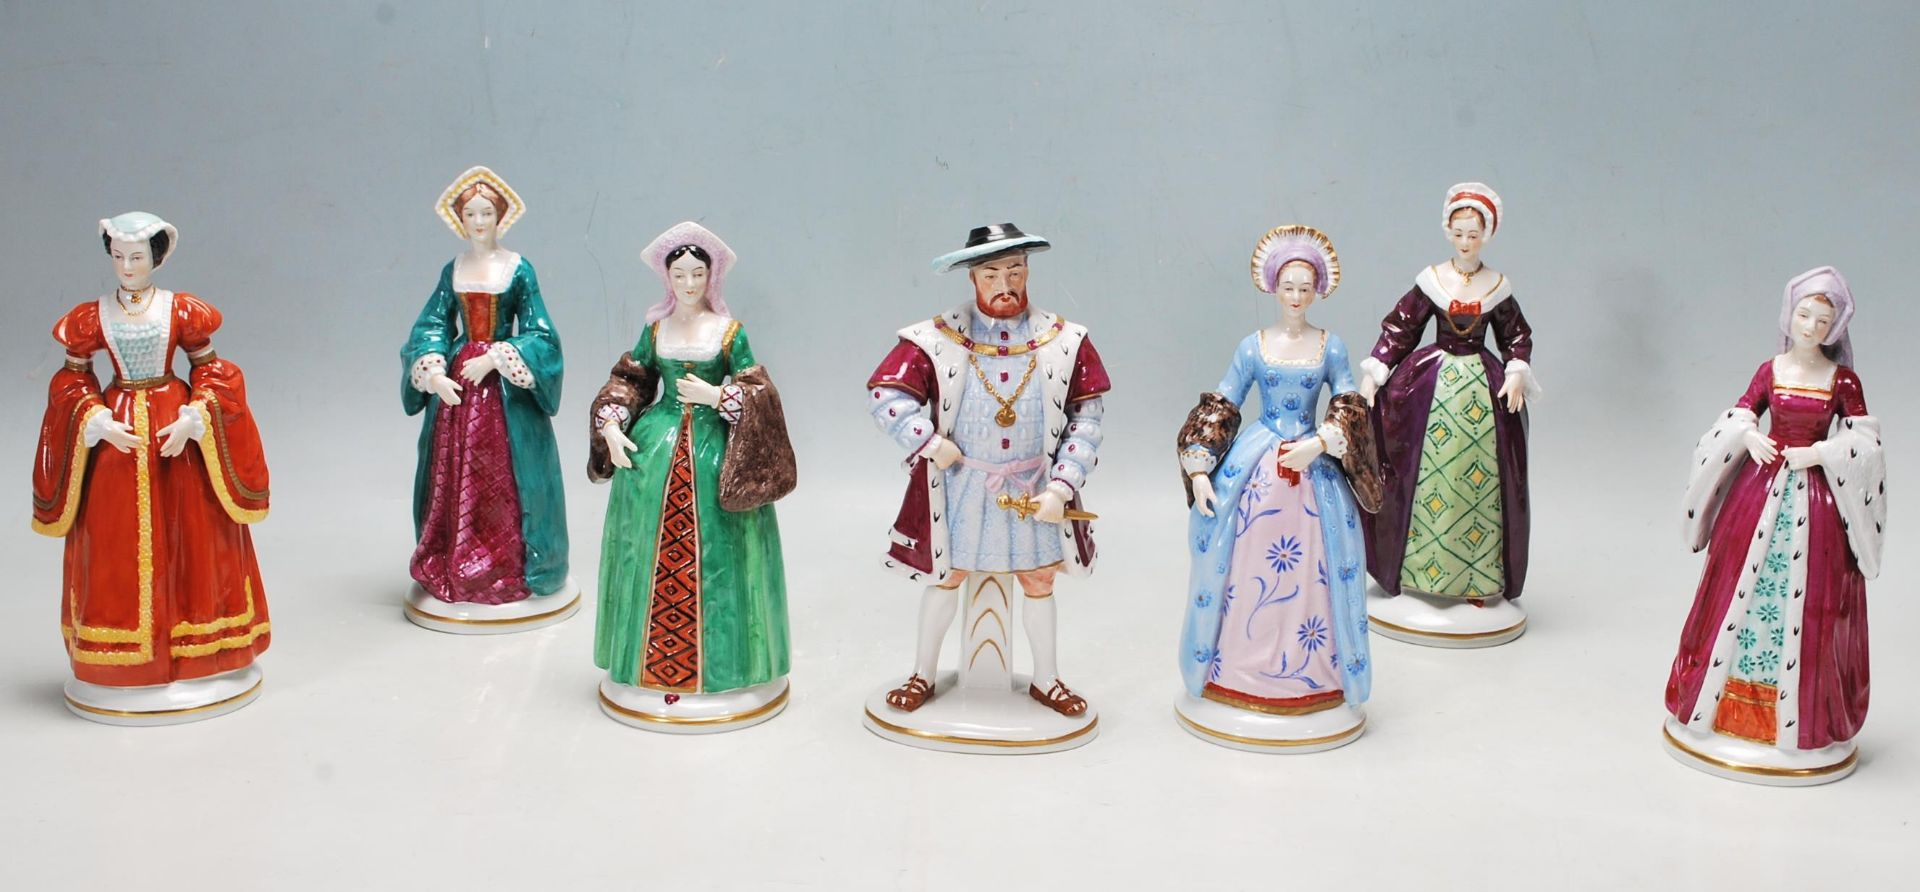 COLLECTION OF SEVEN SITZEDORF CERAMIC PORCELAIN FIGURINES OF HENRY VIII AND HIS SIX WIVES